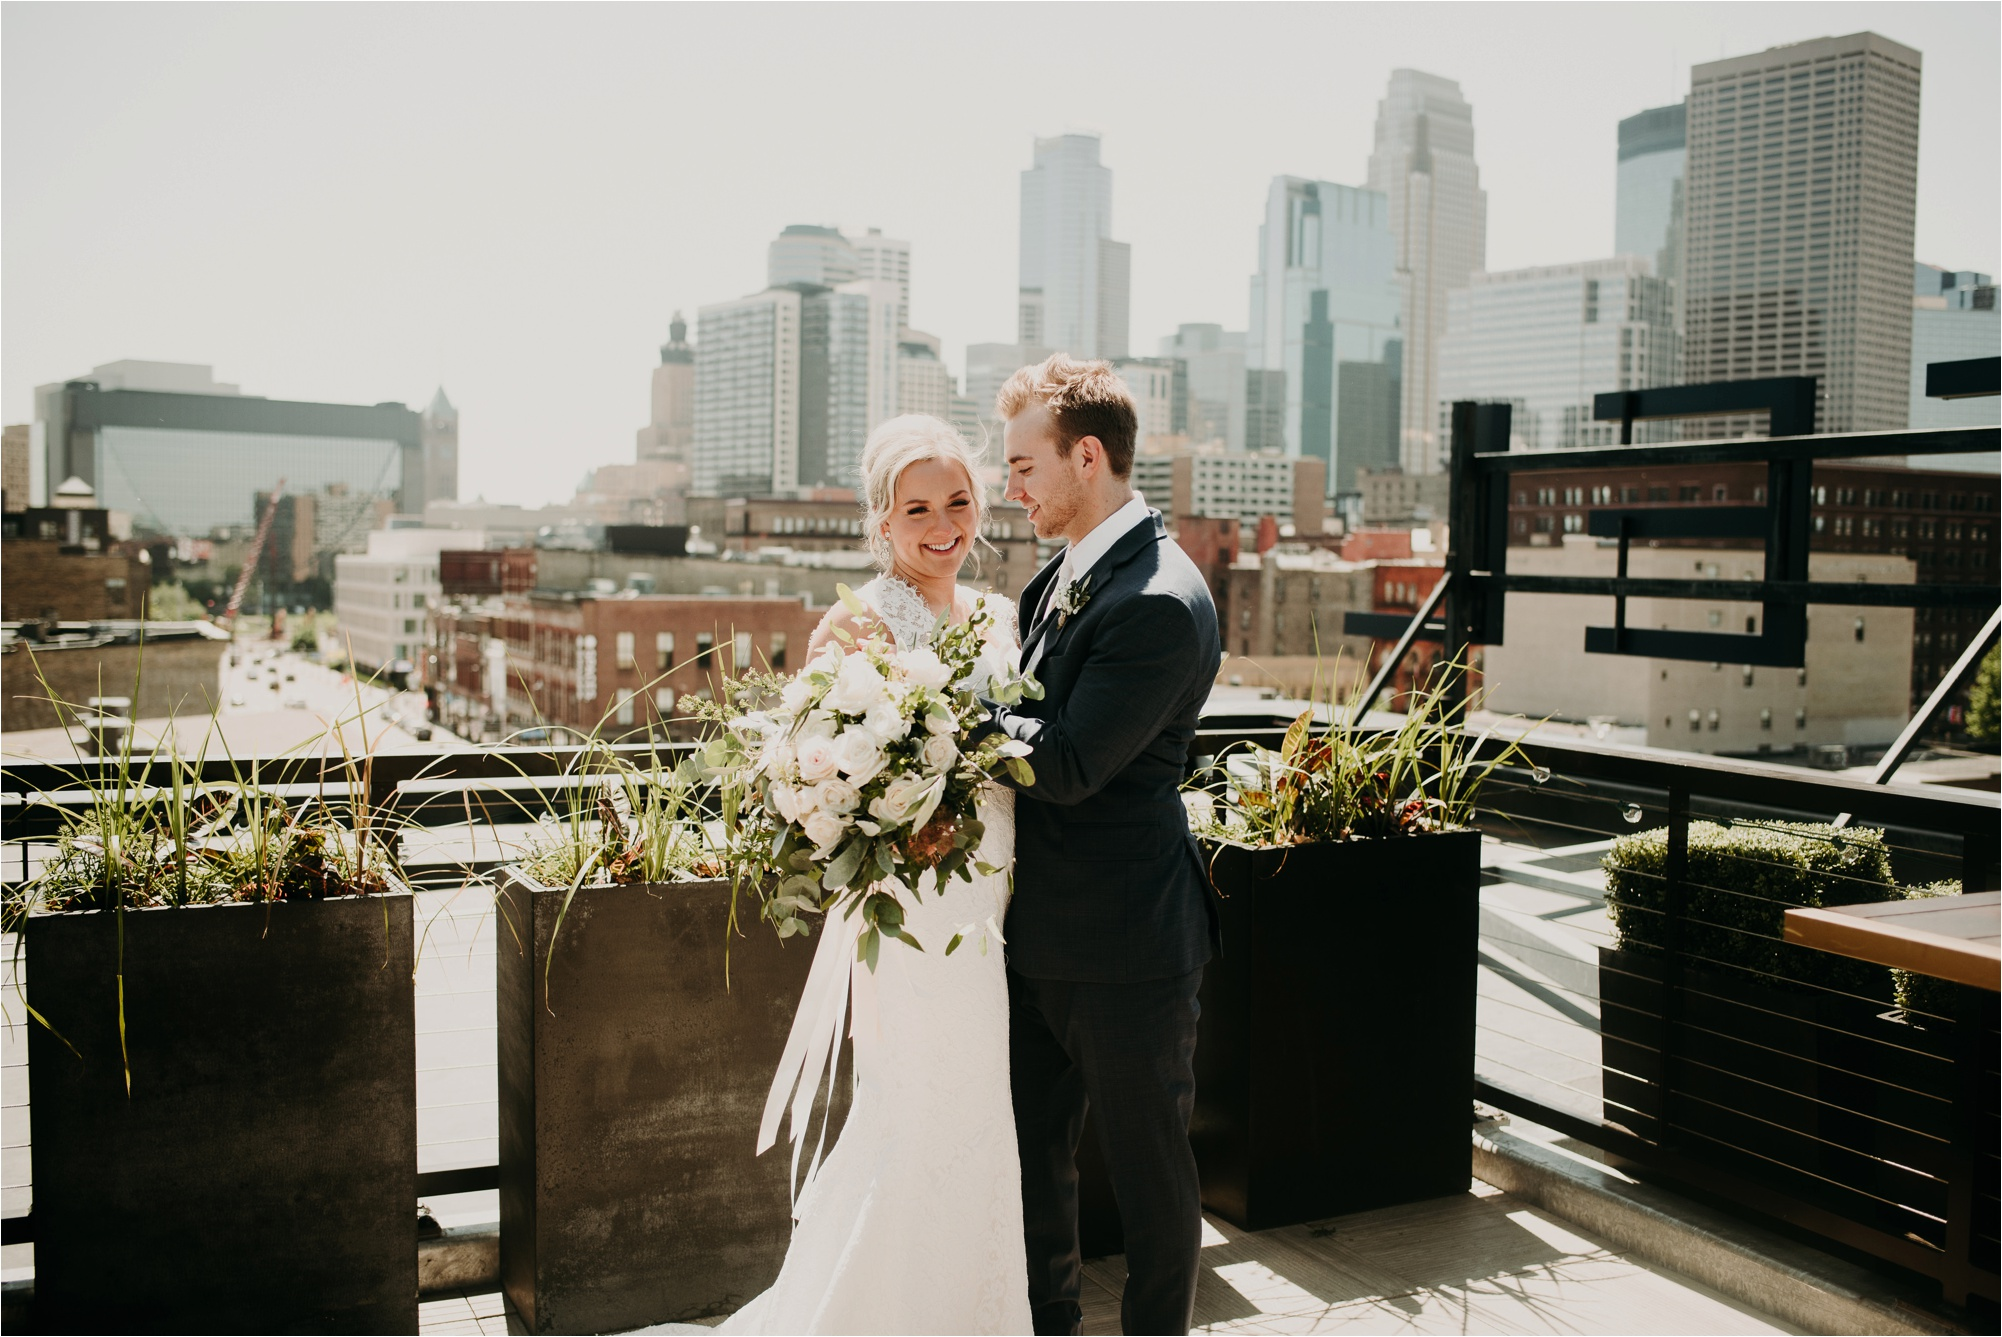 The Lumber Exchange Hewing Hotel Minneapolis Wedding Photographer_4333.jpg